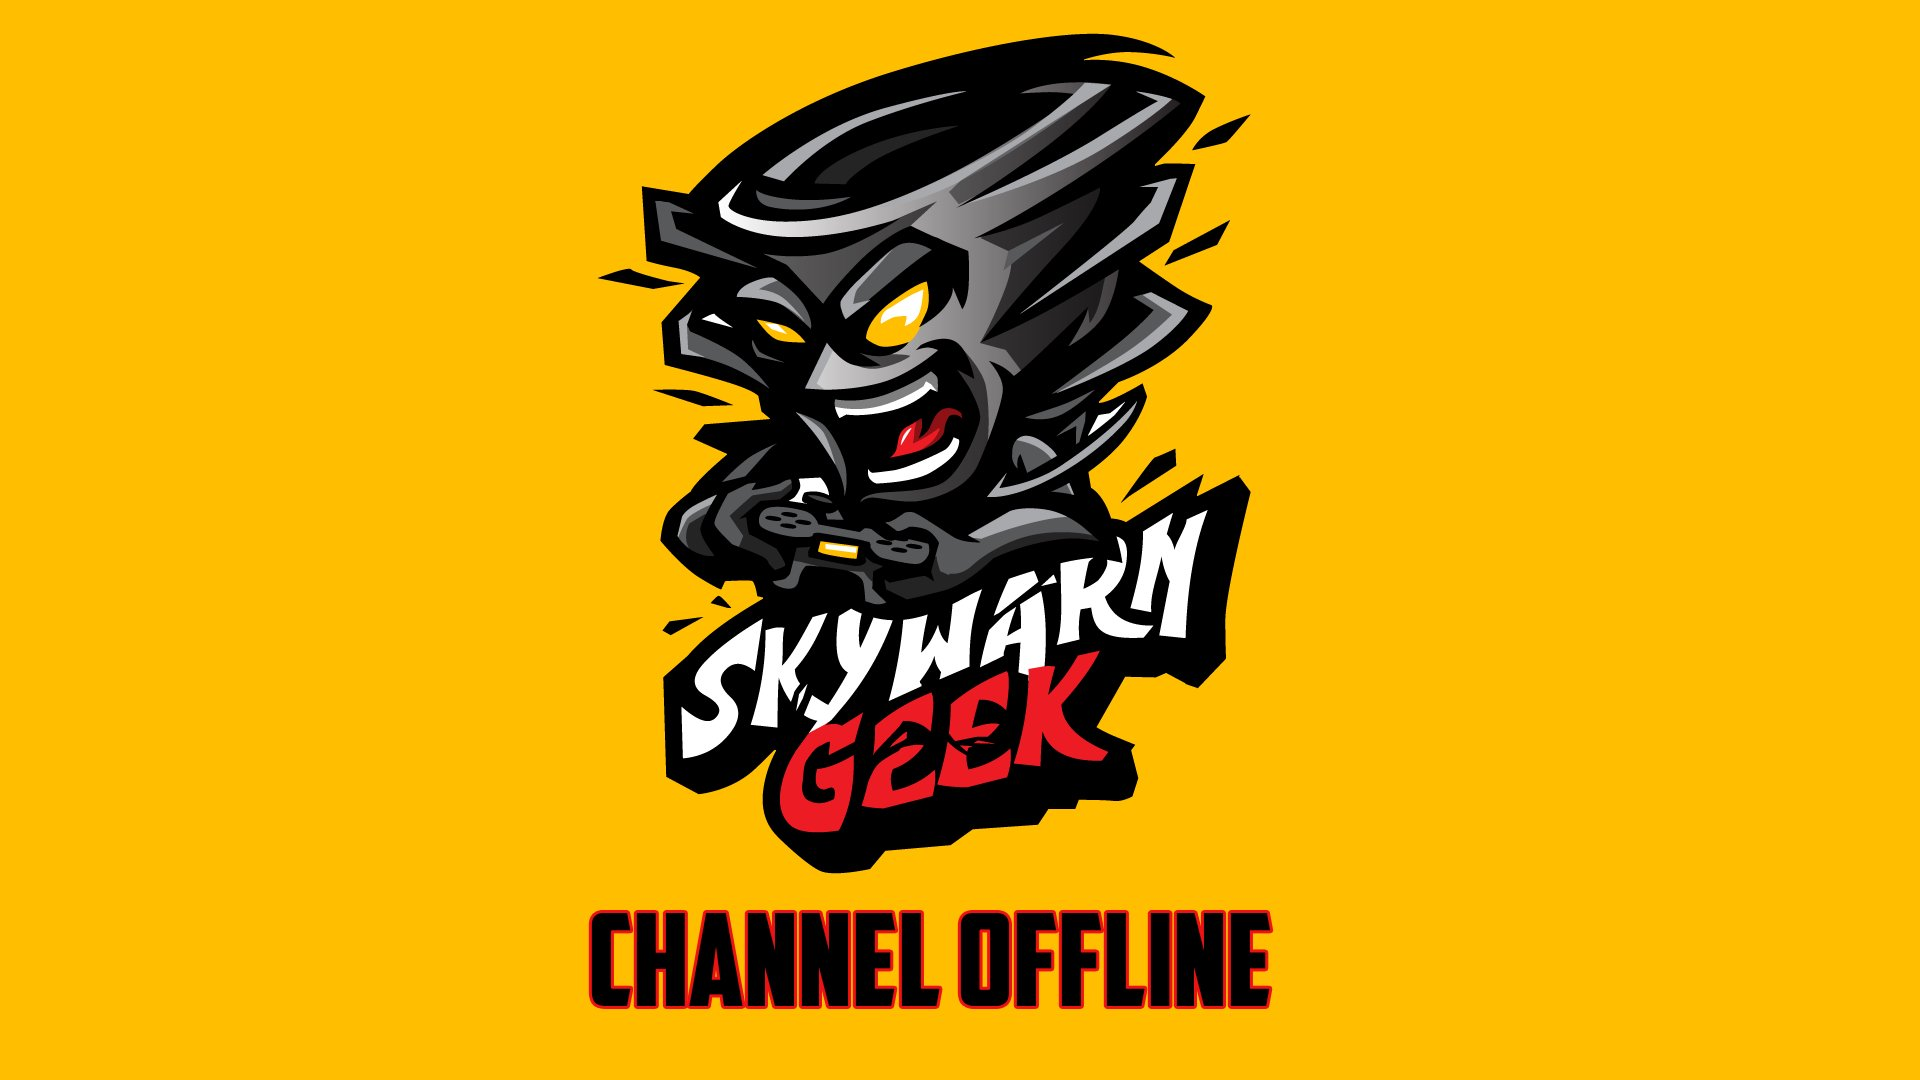 Twitch stream of SkywarnGeek